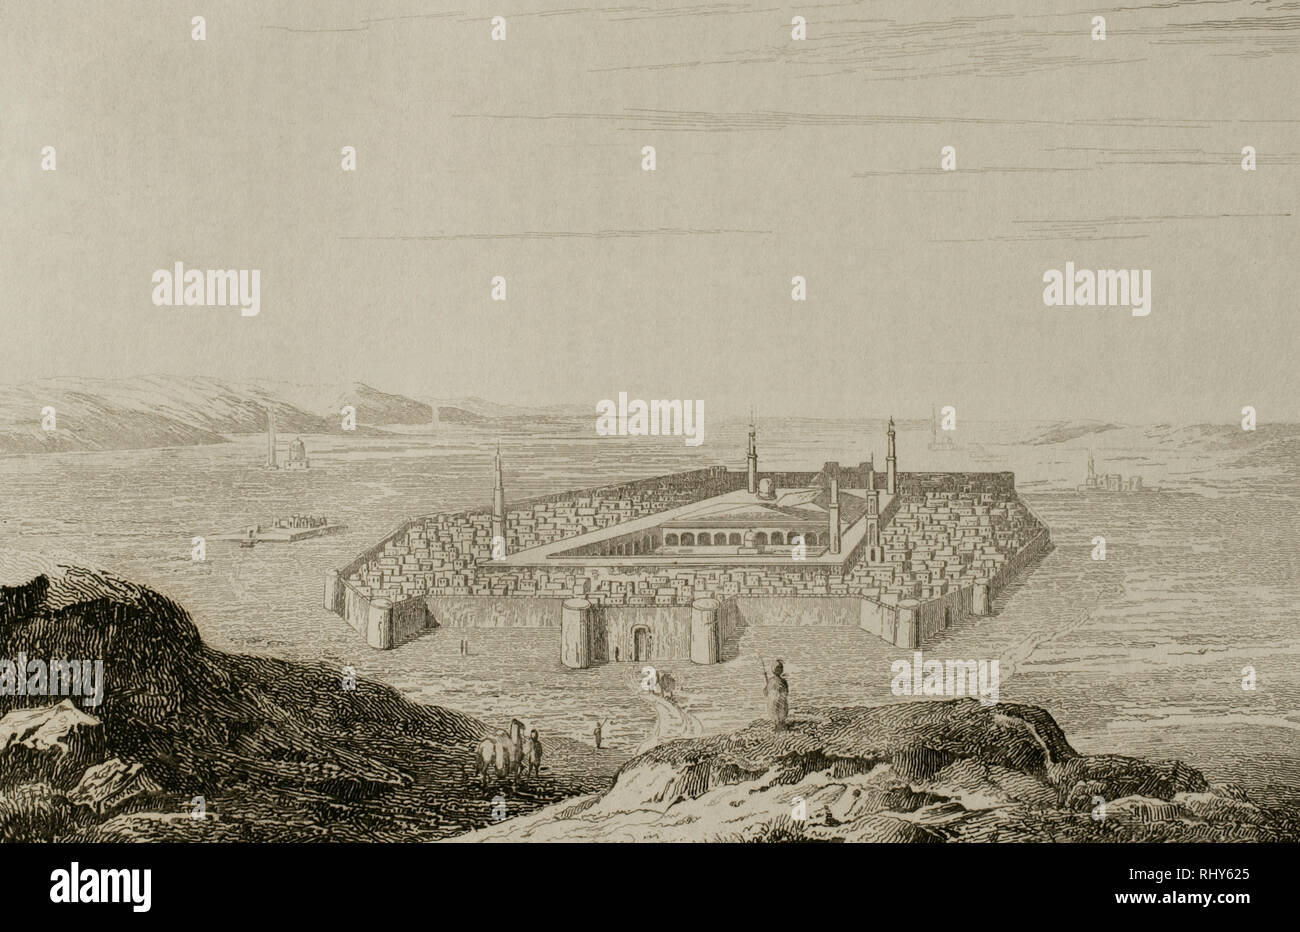 History of Arabia. Medina and tomb of the prophet. Engraving by Fleury. Panorama Universal. History of Arabia, 1851. - Stock Image